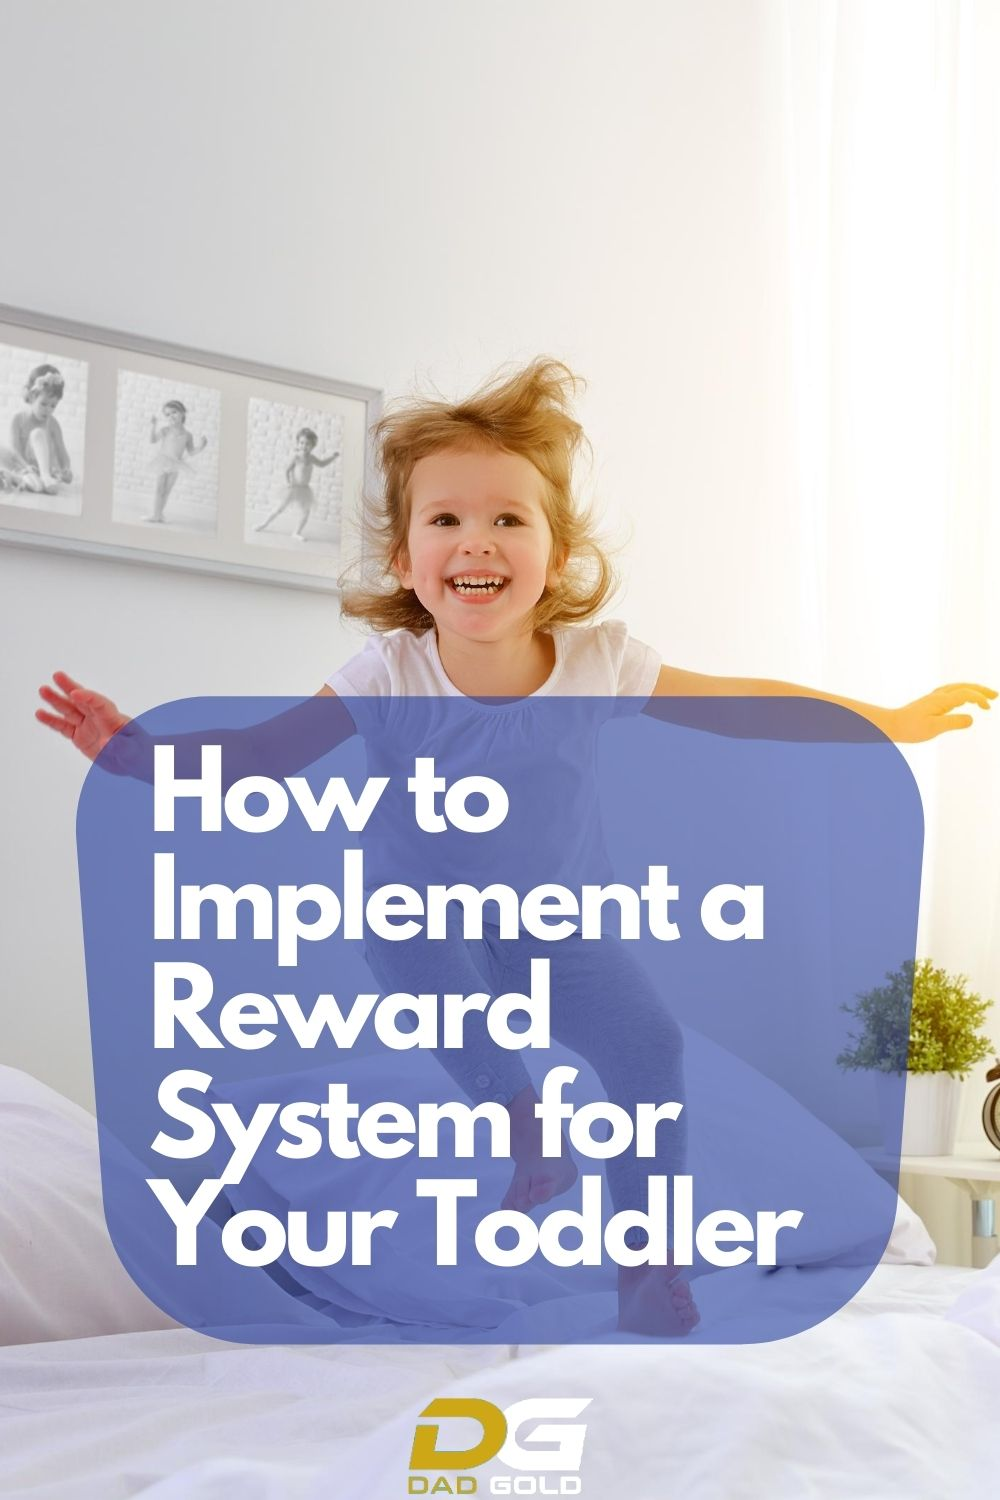 How to Implement a Reward System for Your Toddler dadgold positive parenting tips